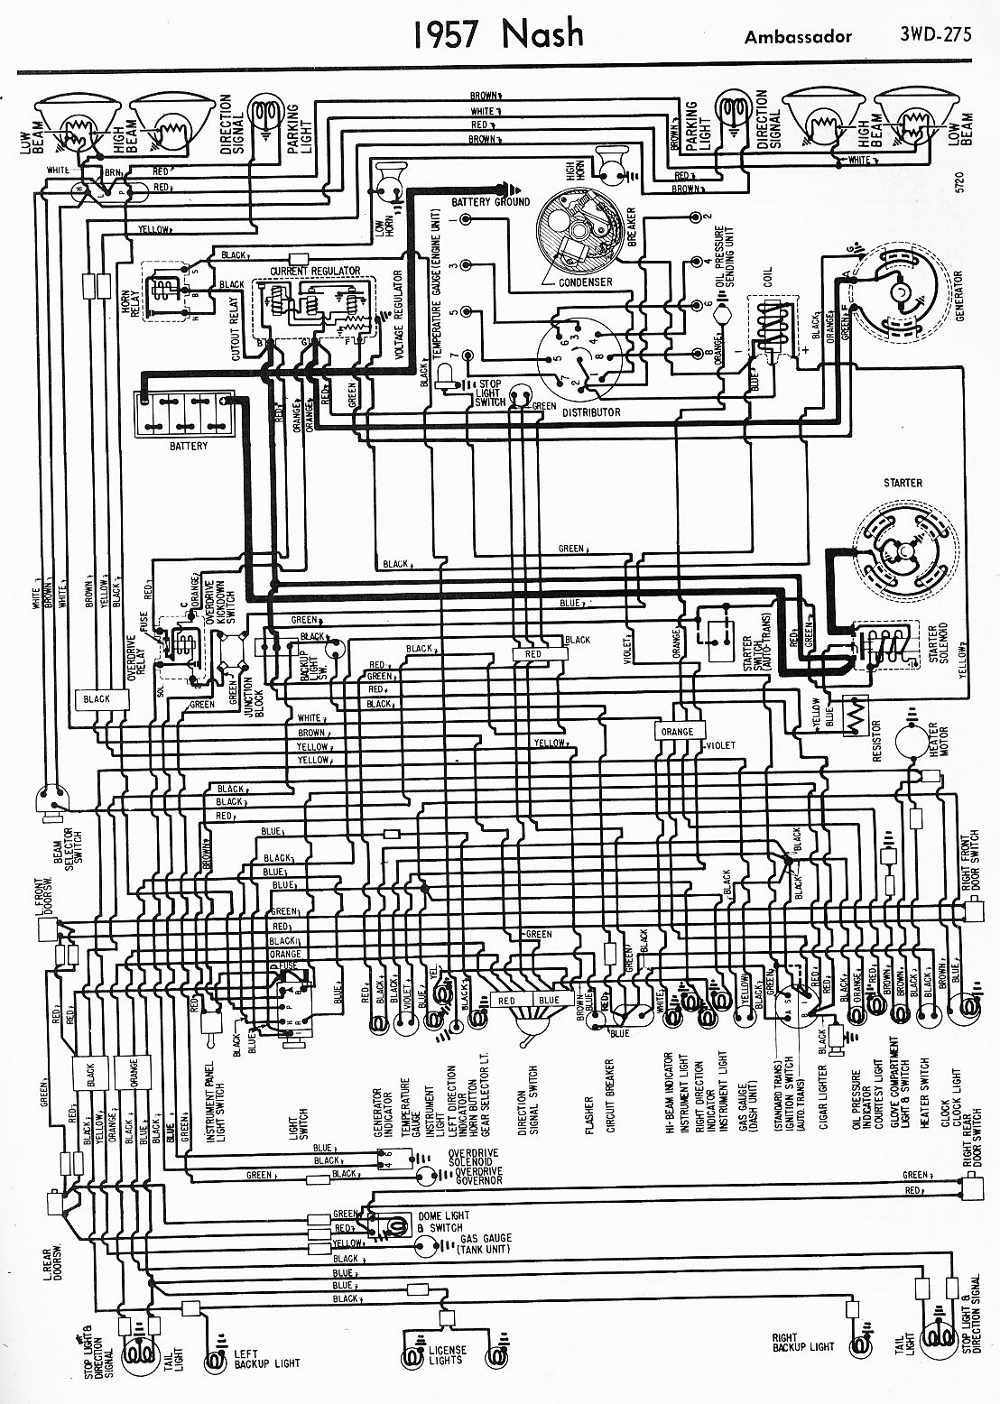 1950 hudson wiring diagram wiring diagram nash metropolitan wiring harness metropolitan nash color wiring diagram [ 1000 x 1404 Pixel ]